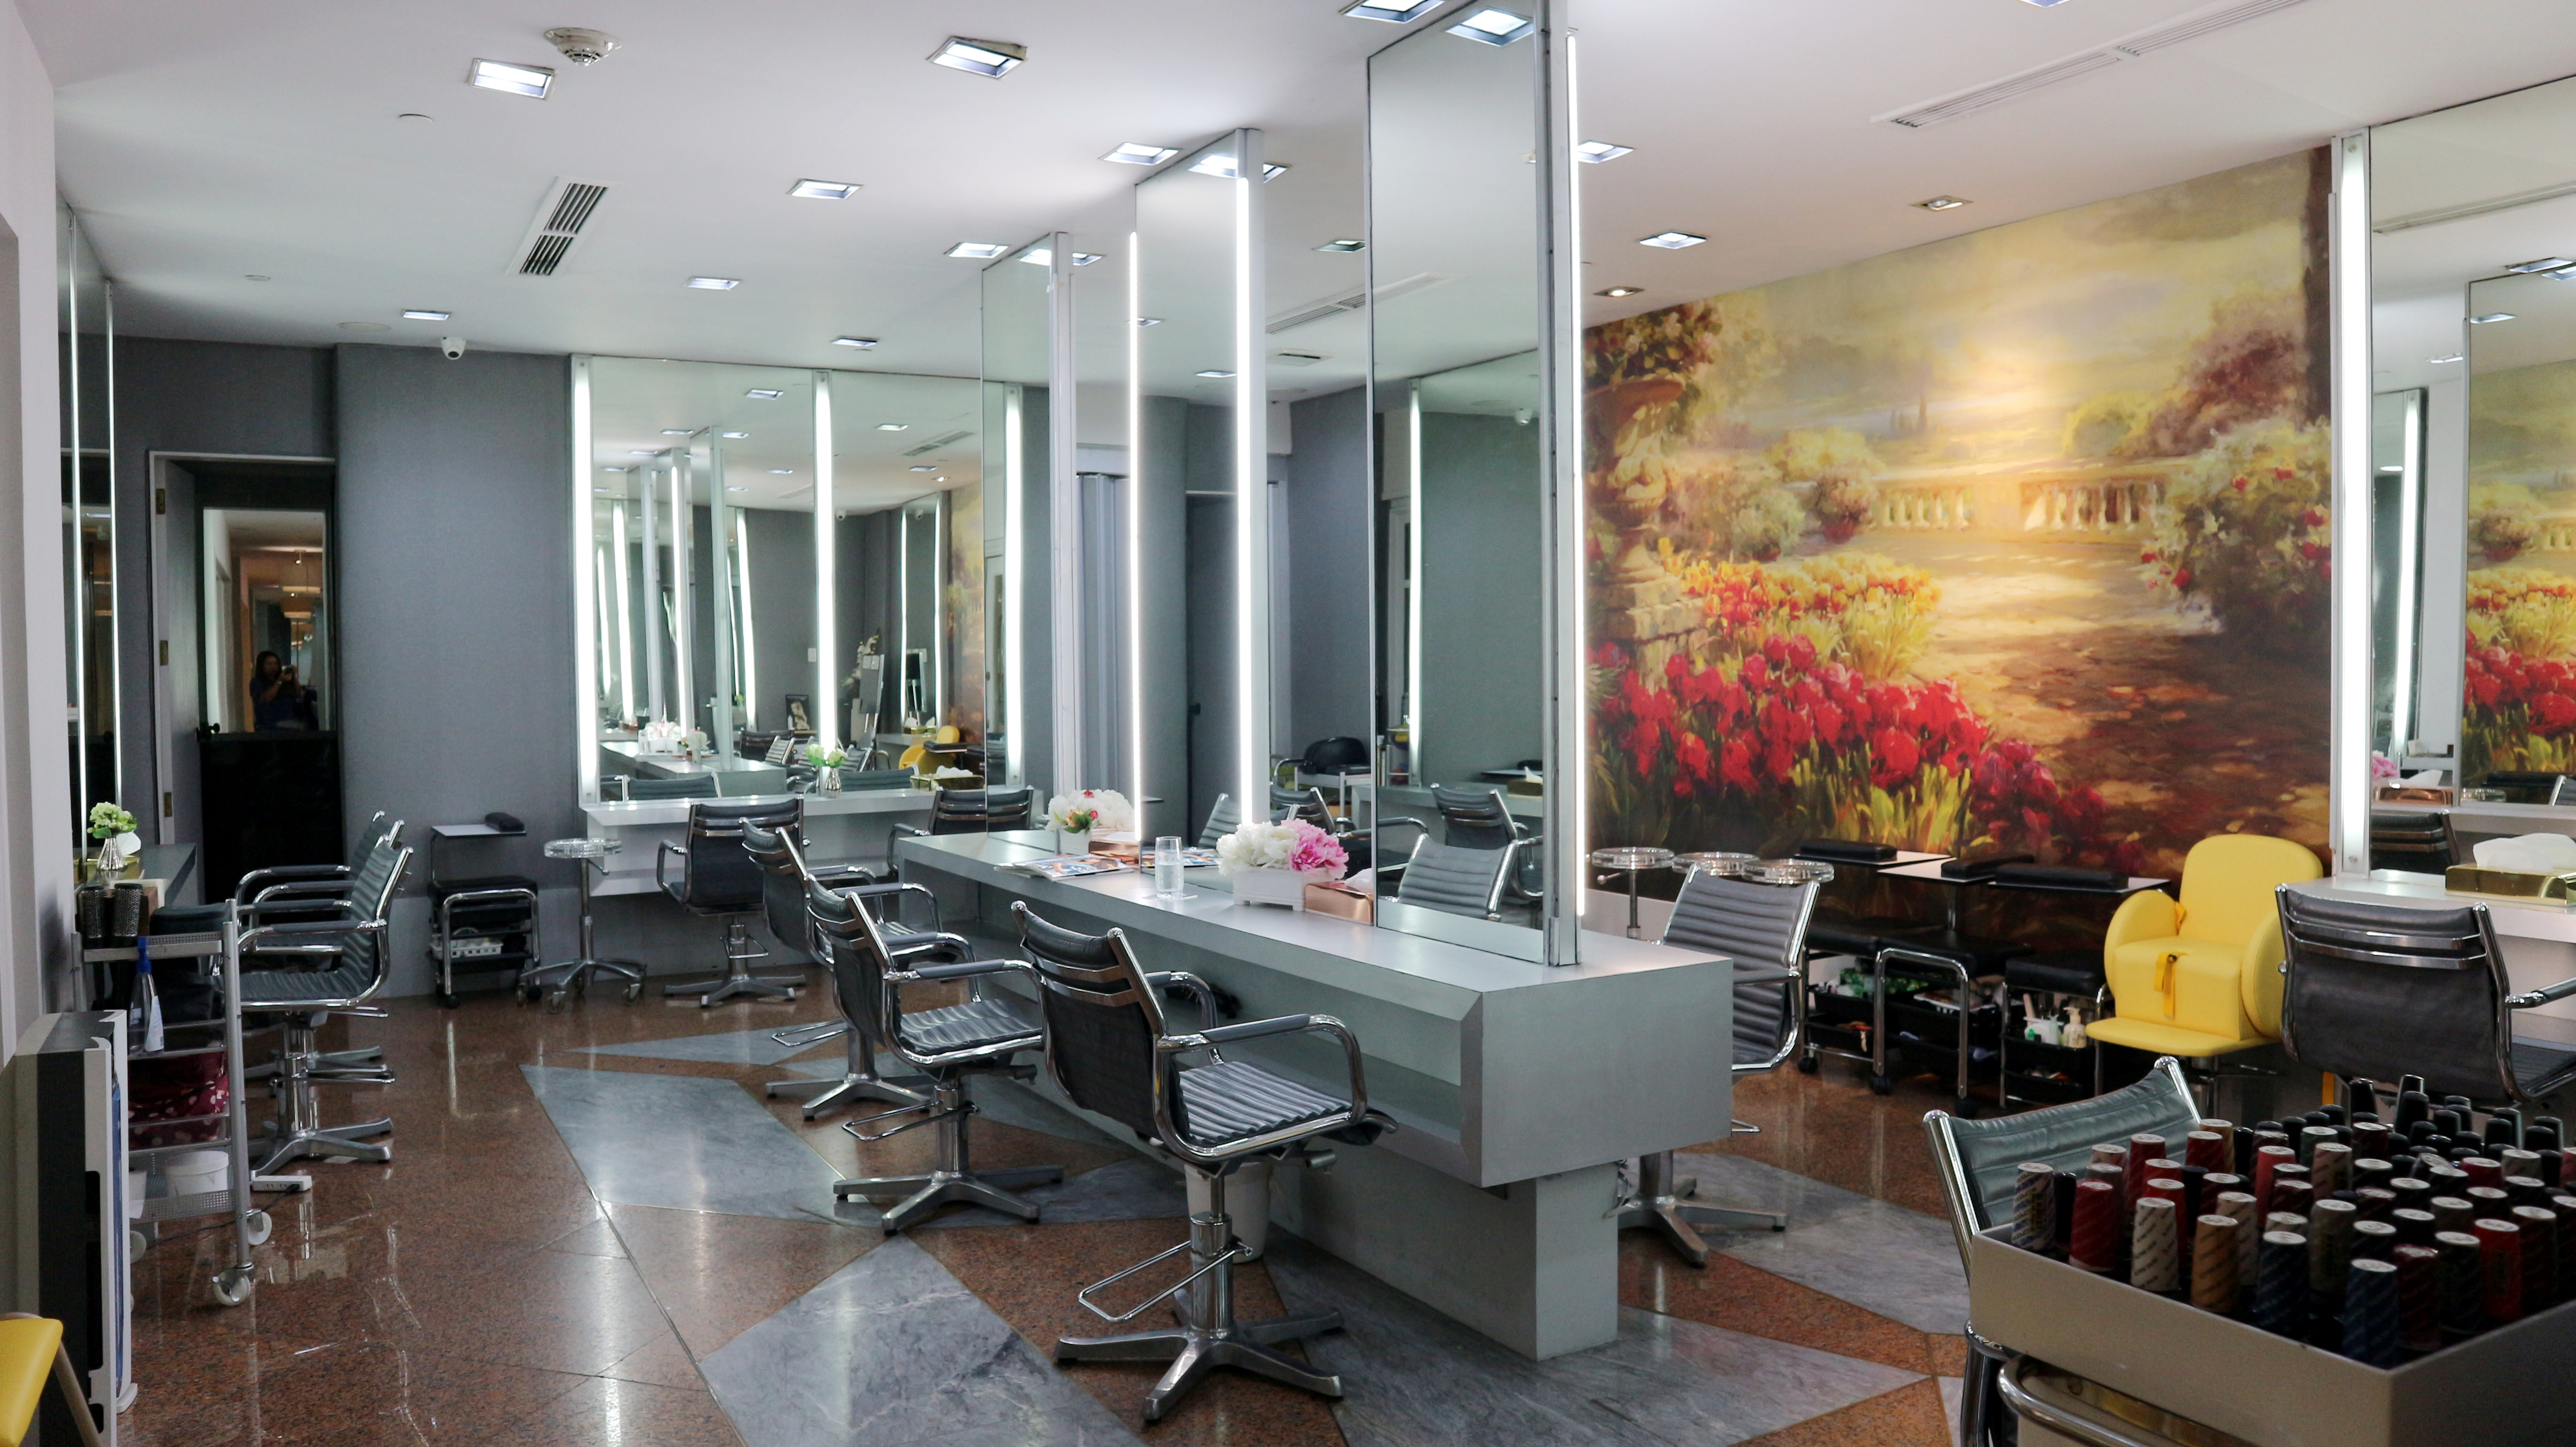 Salon Maquillage My Le Maquillage Salon Straight Therapy Rebonding Experience